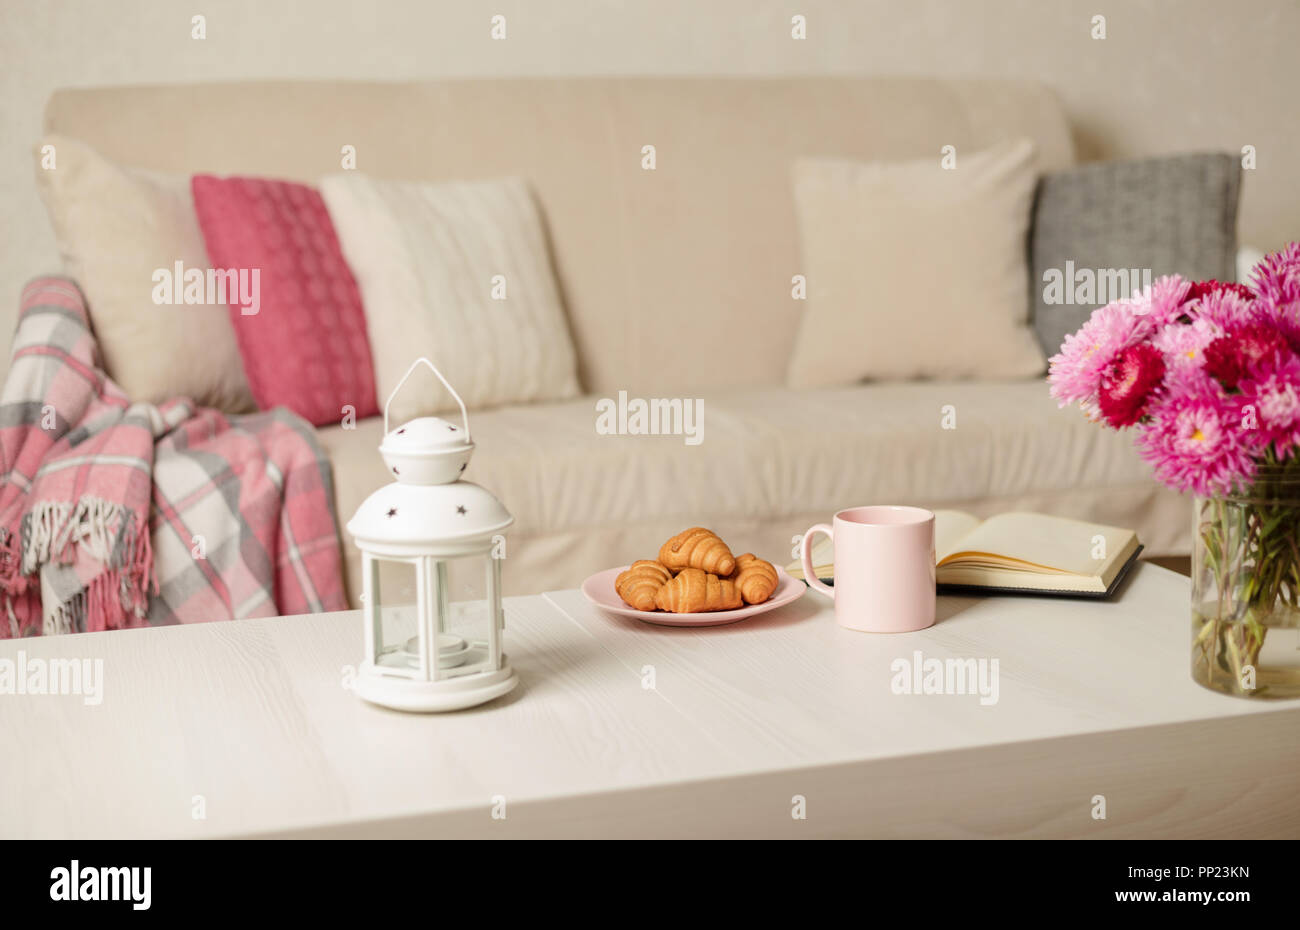 Plaid Couch Stock Photos & Plaid Couch Stock Images - Alamy